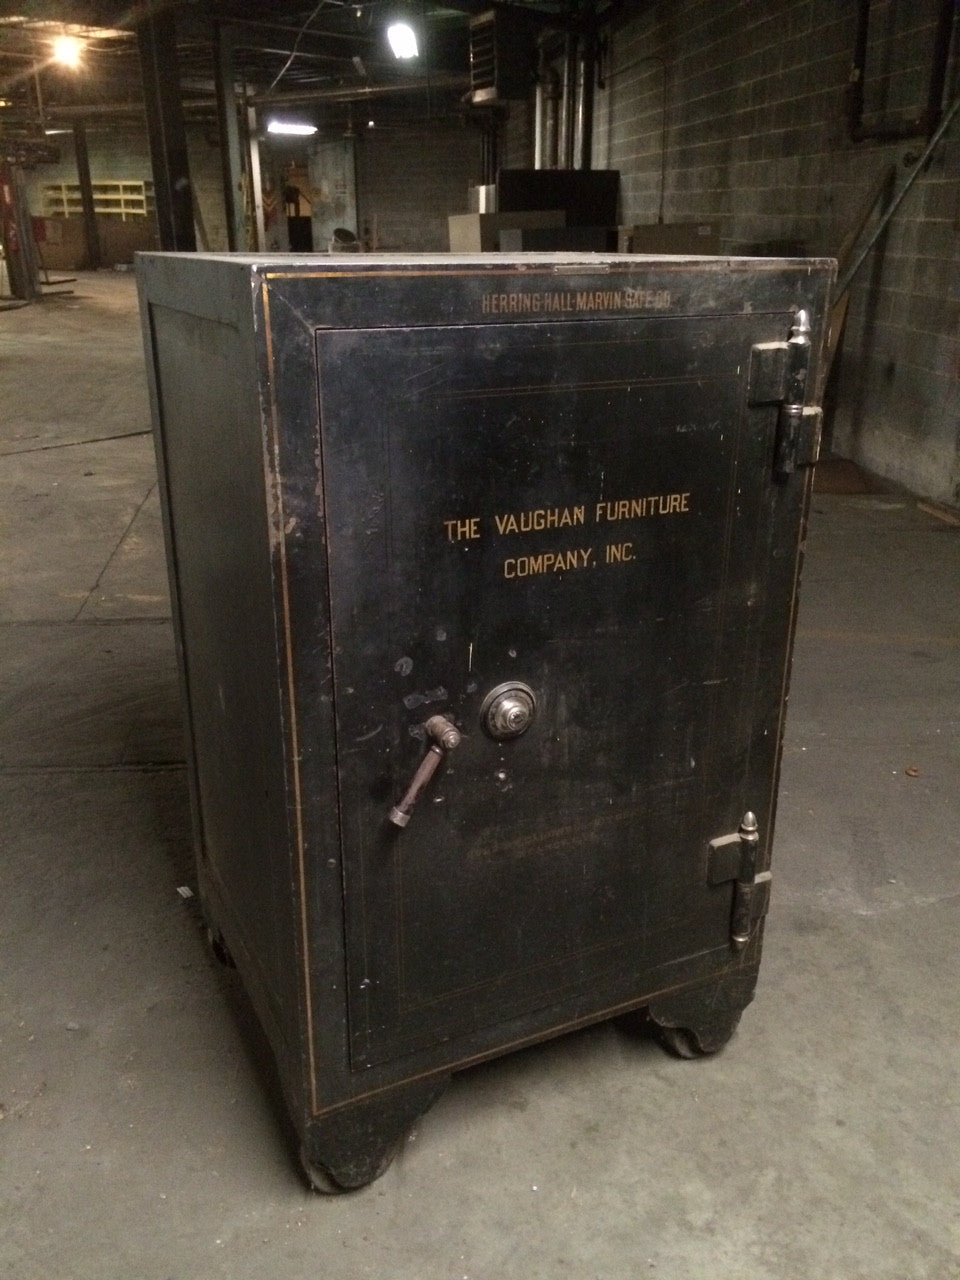 ... Antique Safe By Herring Hall Marvin Company ...